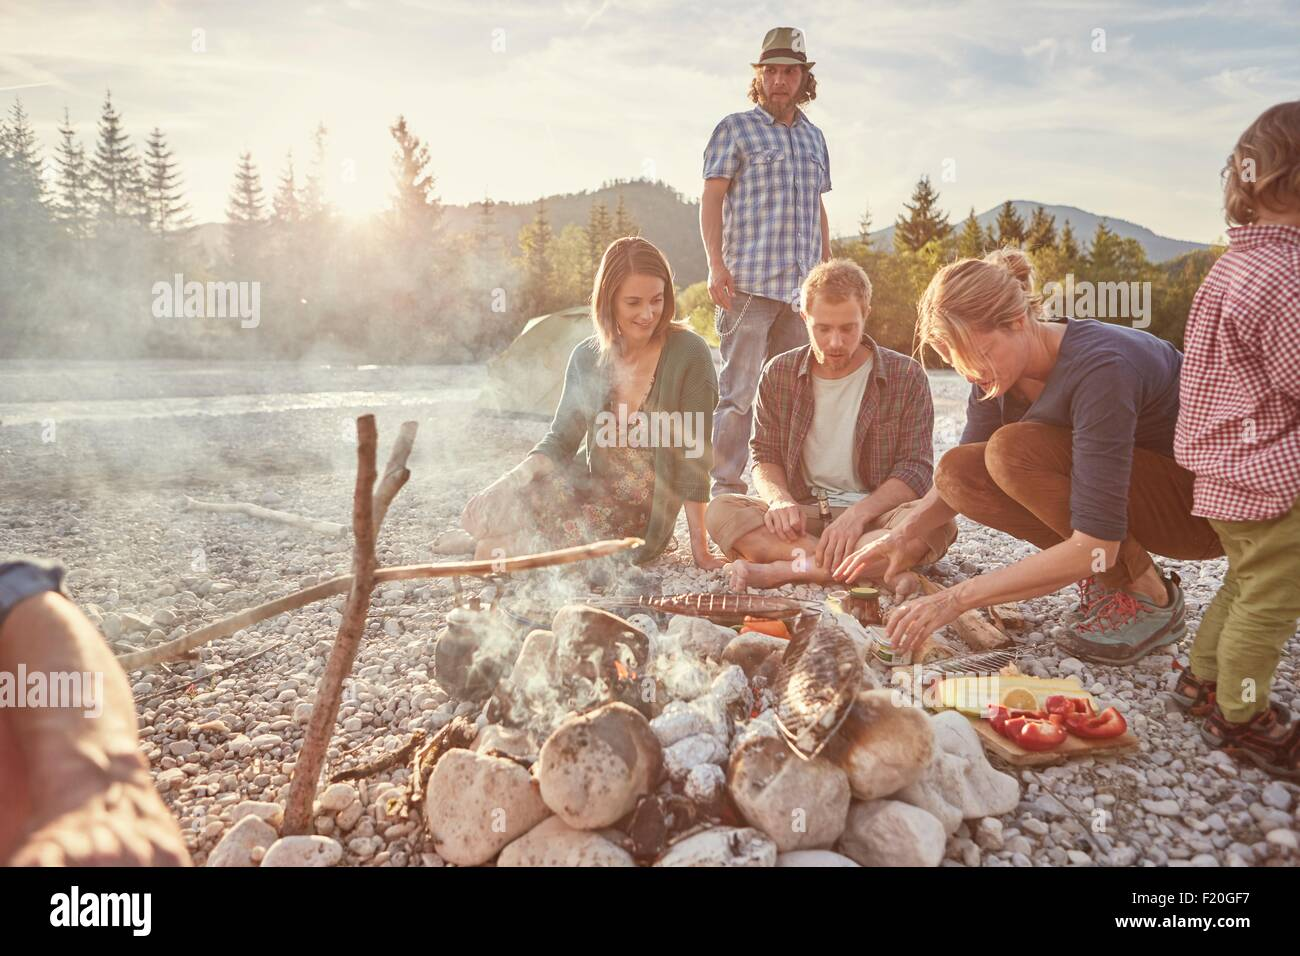 Family sitting around campfire preparing food - Stock Image